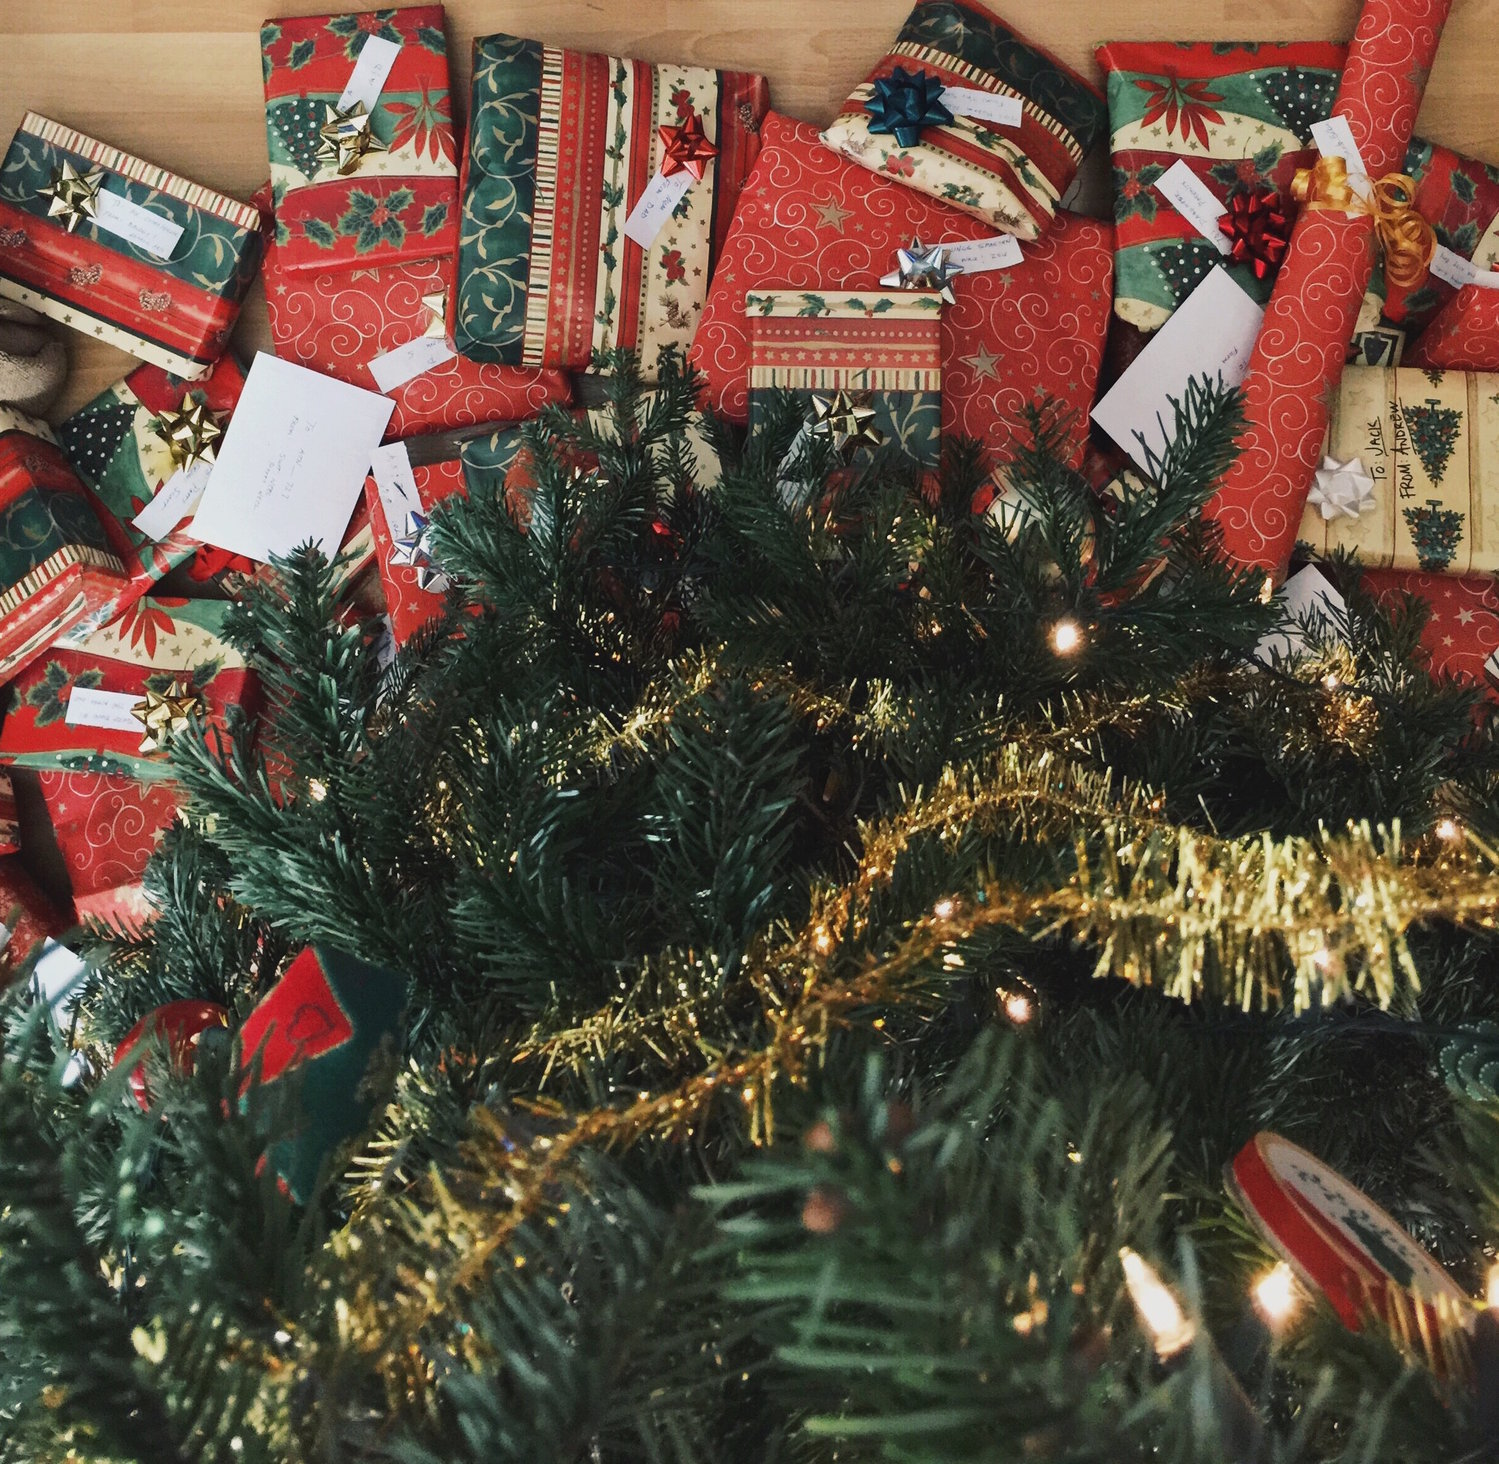 Calling all \'elves\' to help collect Christmas gifts | Herald ...